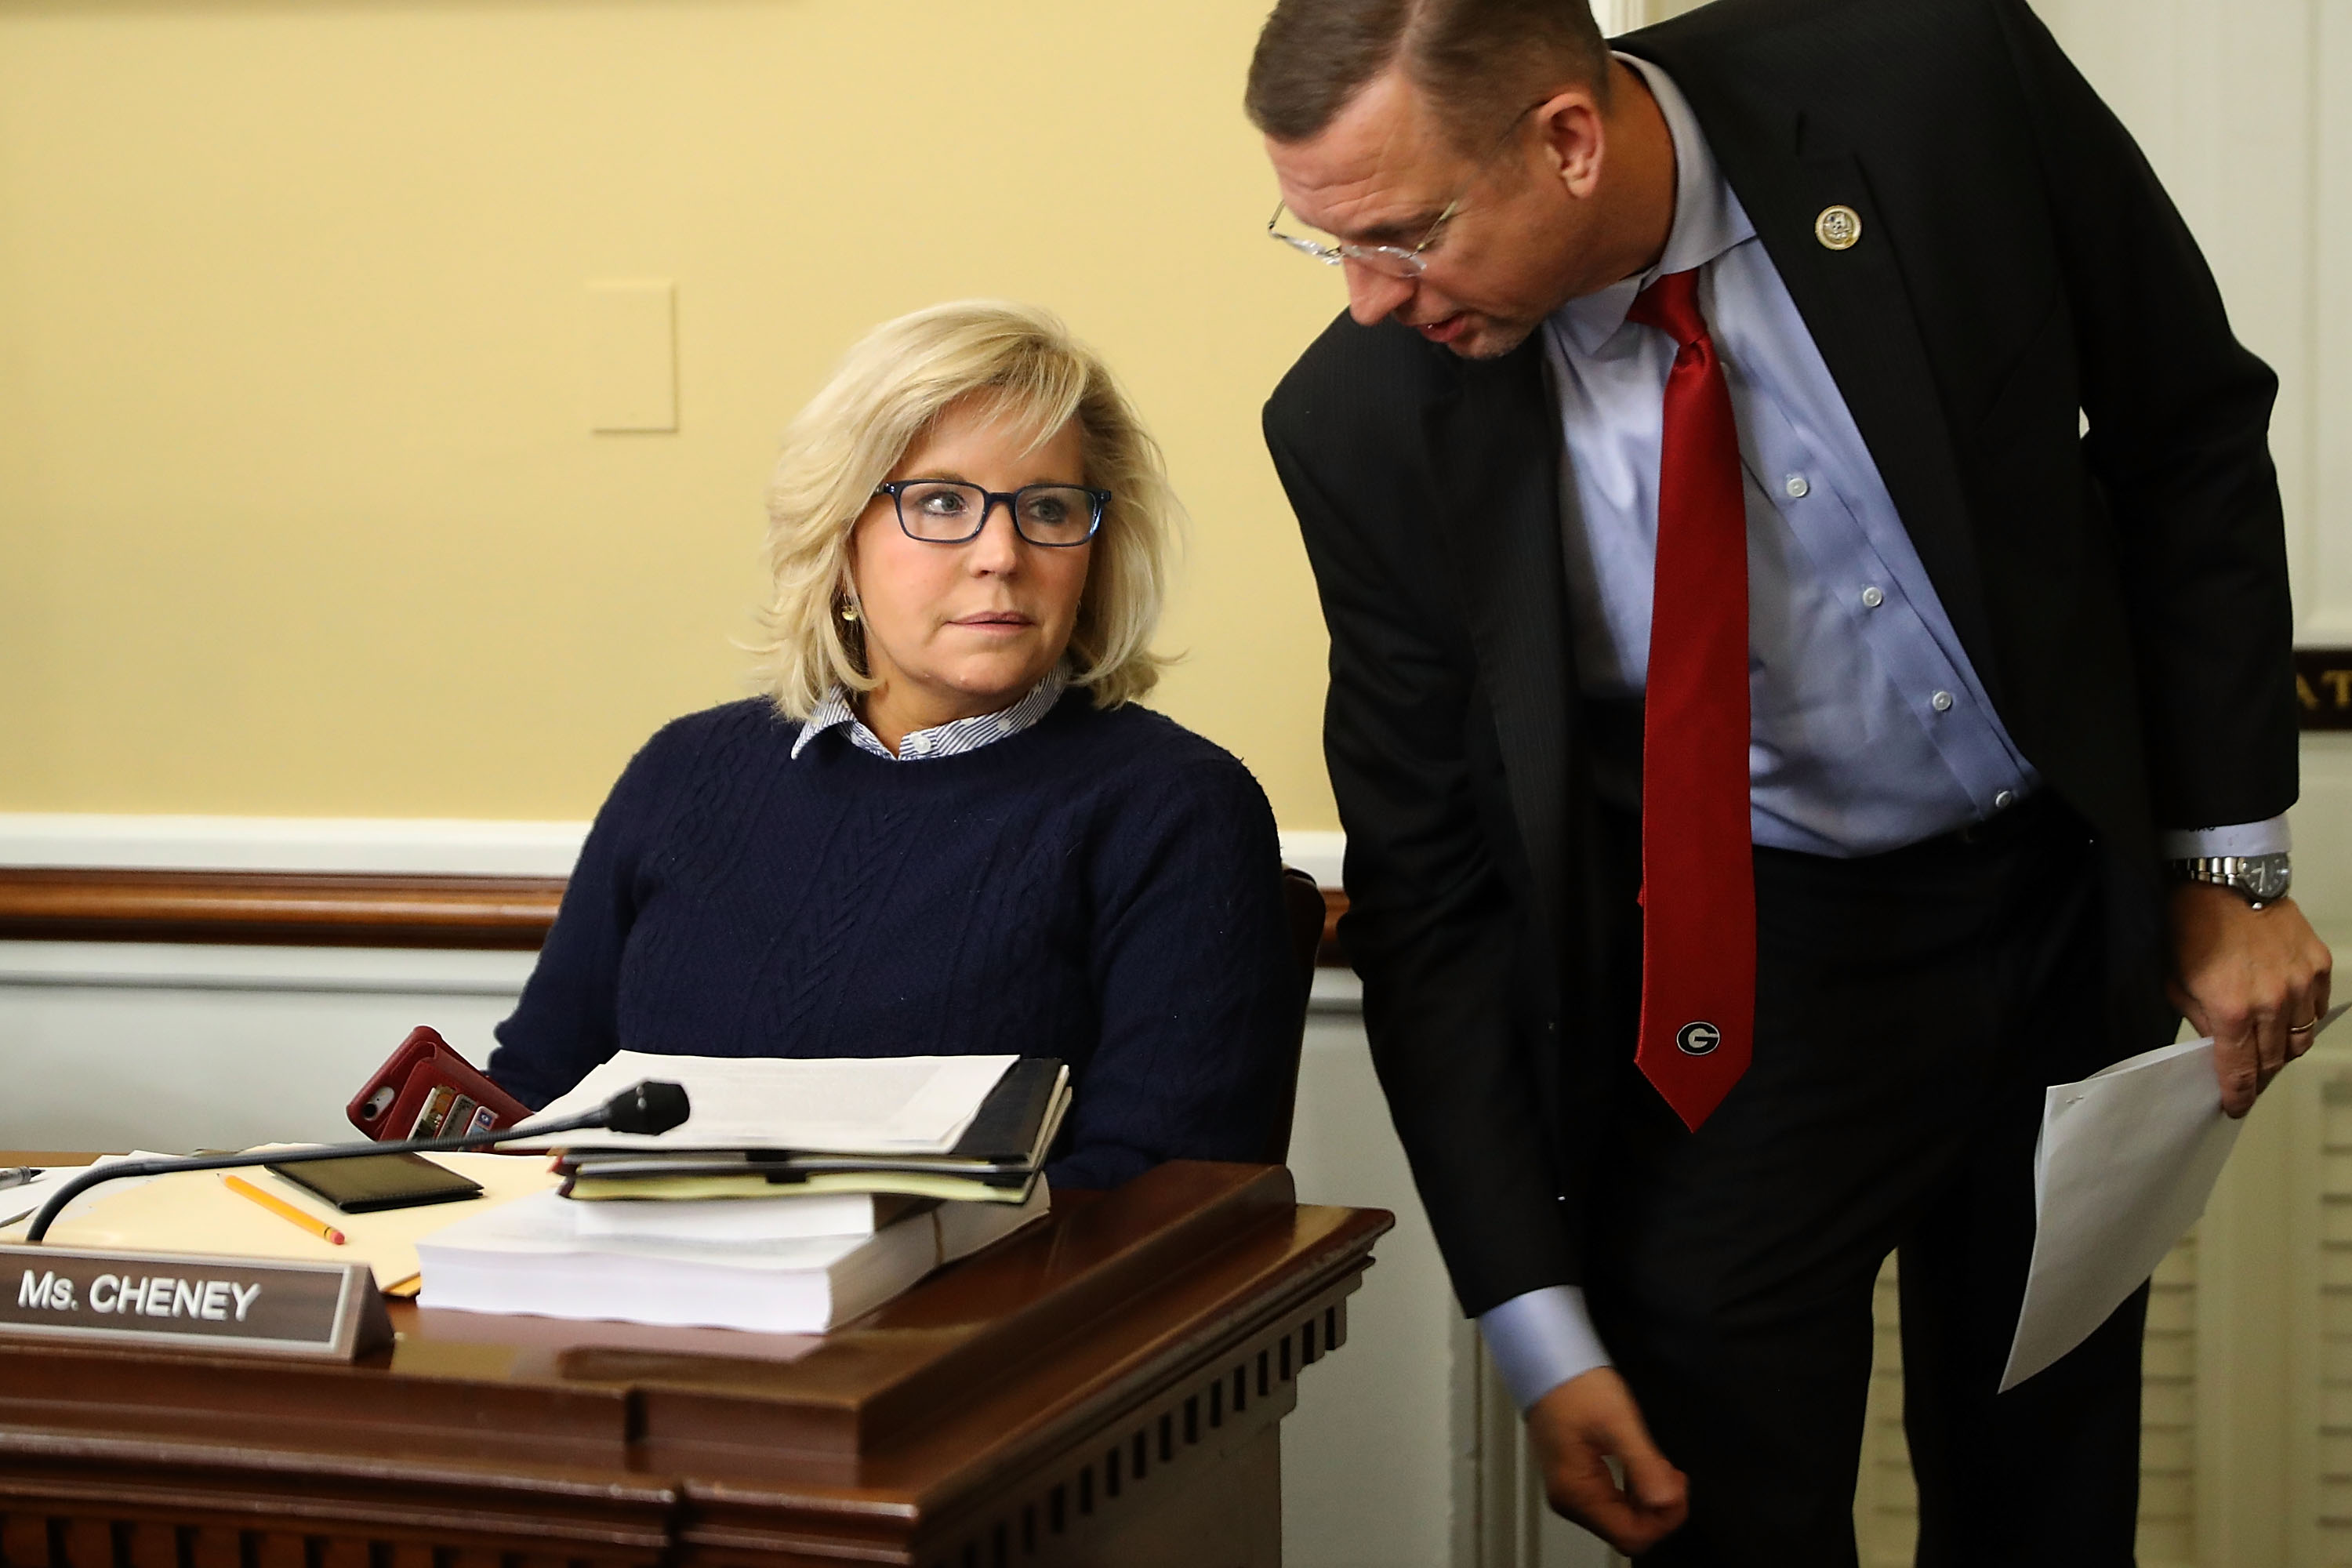 House Rules Committee members Rep. Liz Cheney (R-WY) (L) and Rep. Doug Collins (R-GA) talk during a break in a hearing at the U.S. Capitol December 18, 2017 in Washington, DC. (Chip Somodevilla/Getty Images)